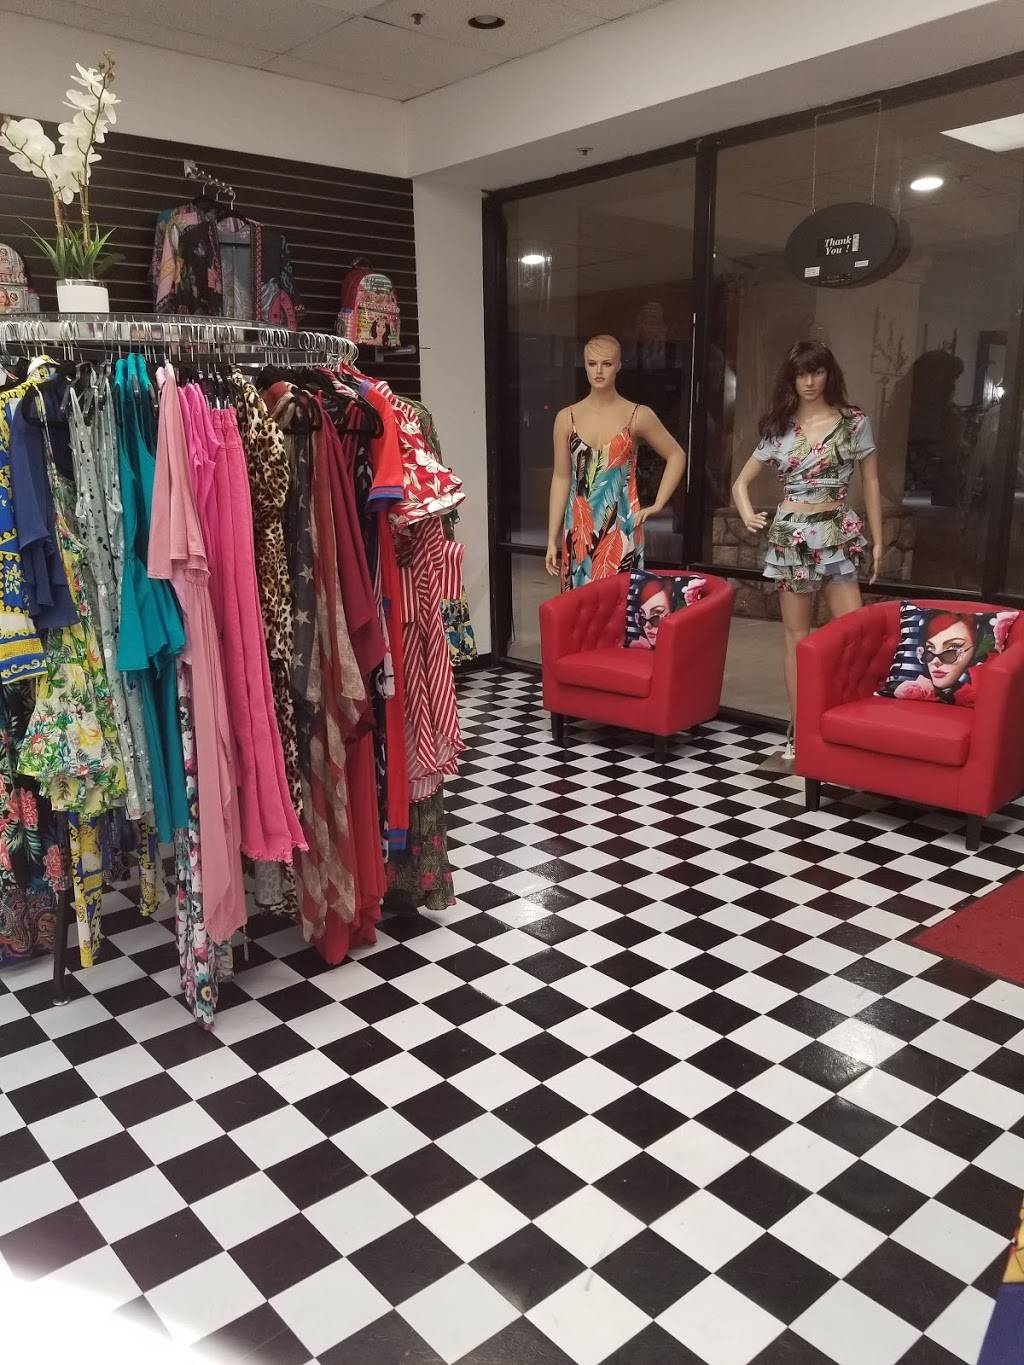 Step N Out Hair Salon and Clothing Boutique - hair care  | Photo 3 of 5 | Address: 2990 N Alma School Rd, Chandler, AZ 85224, USA | Phone: (313) 221-4933